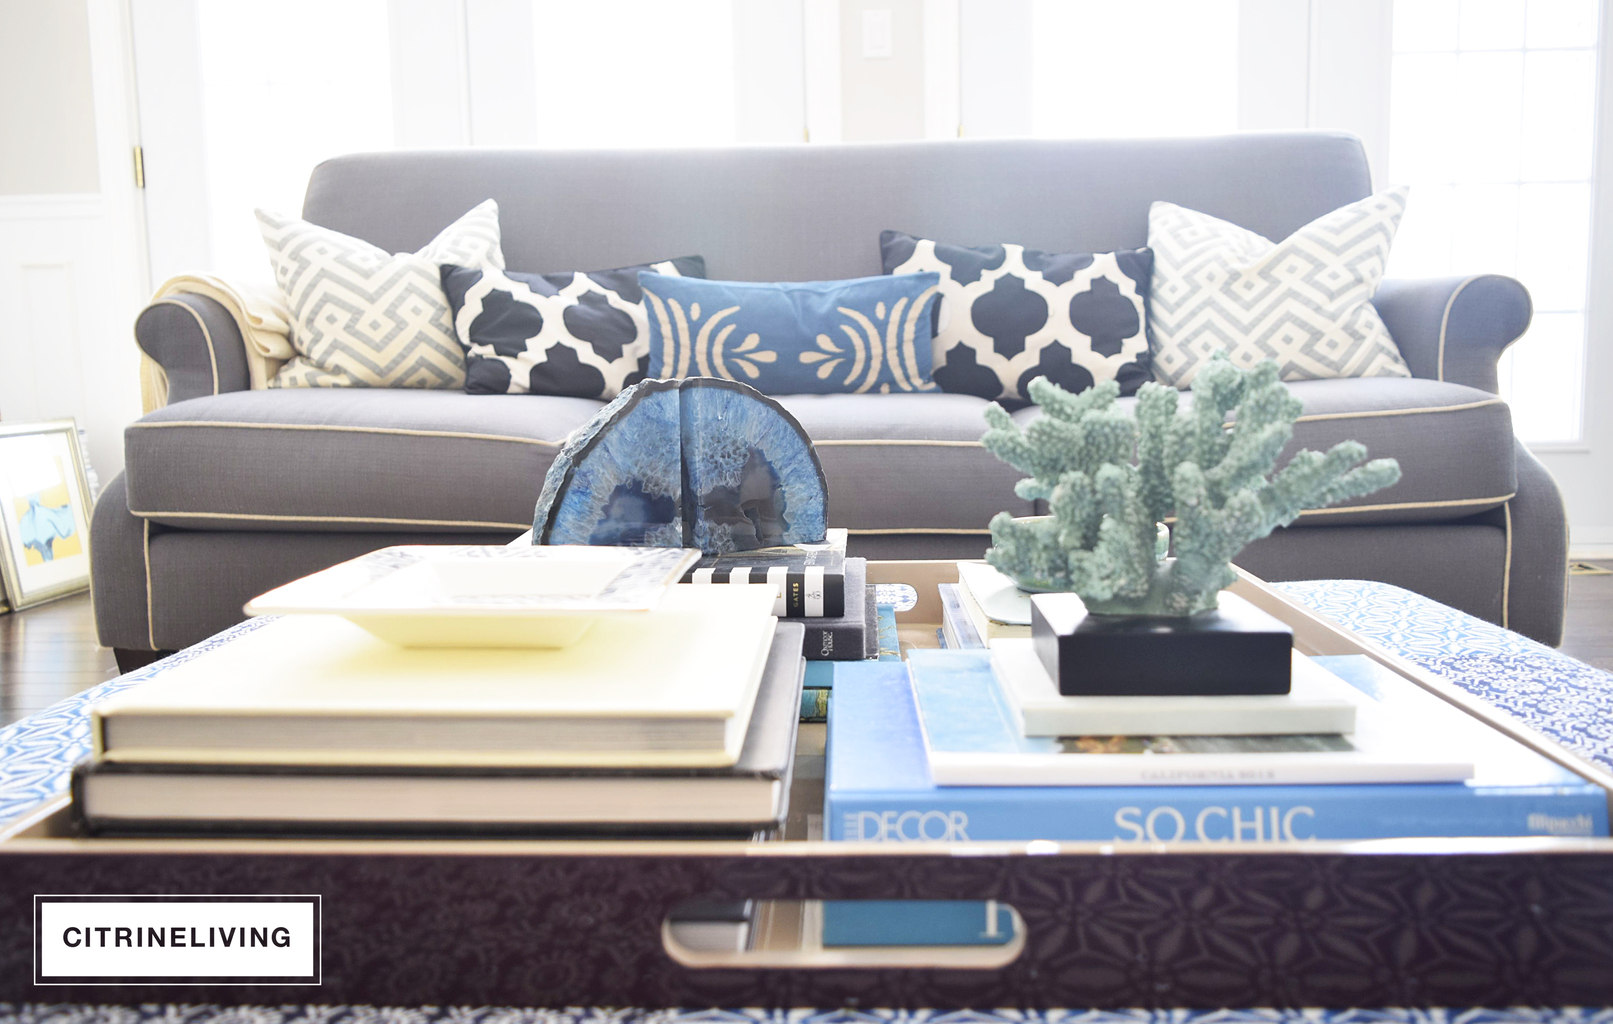 CitrineLiving-styling-accessories